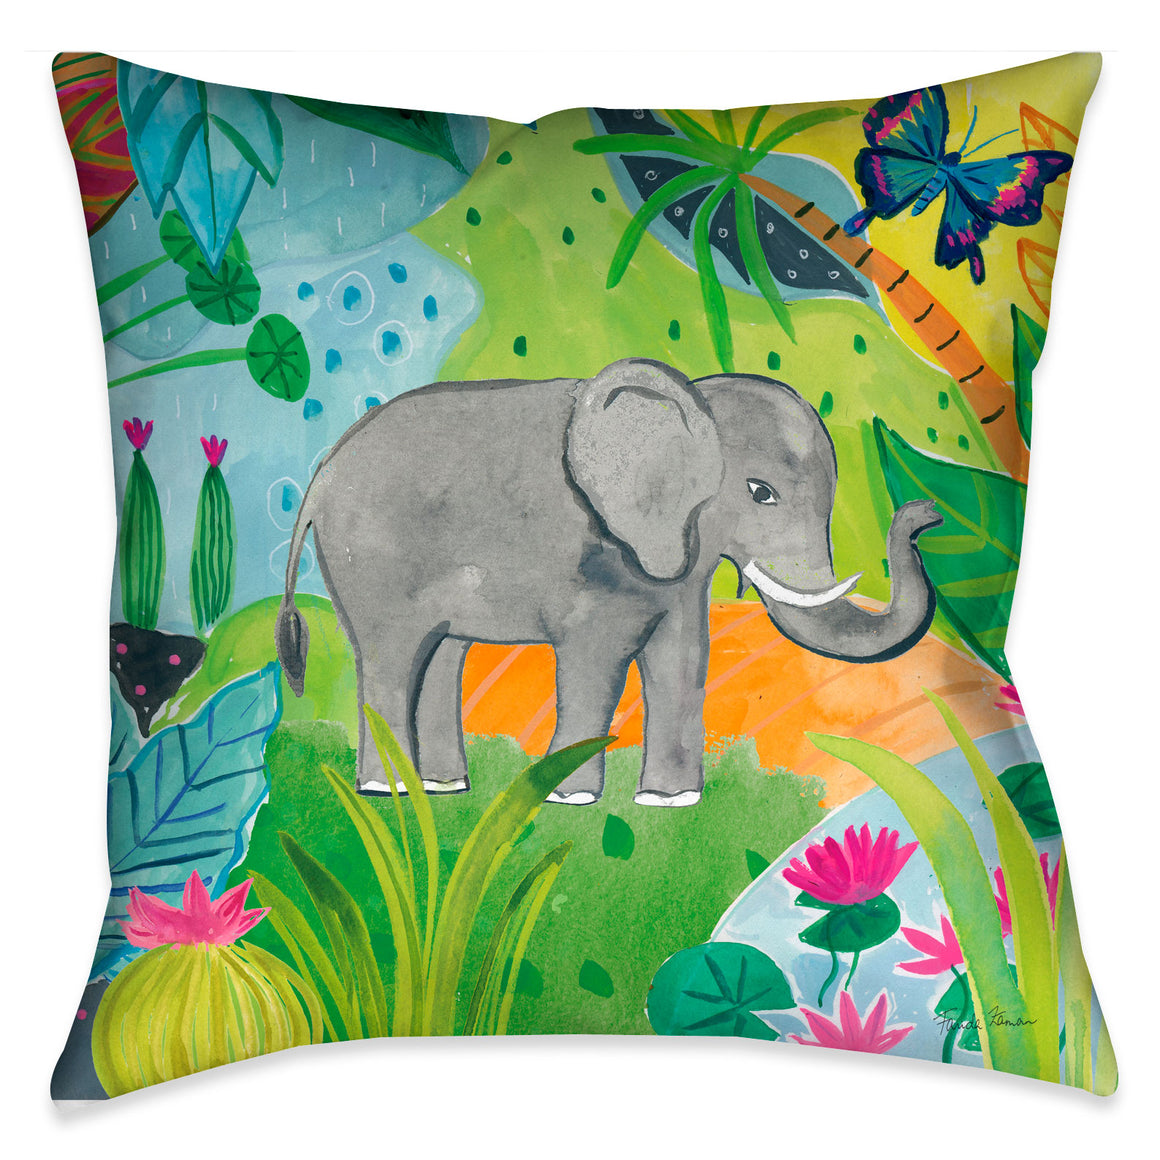 Colorful, whimsical and bright, this fun jungle elephant decorative pillow made in the USA will surely brighten your home decor